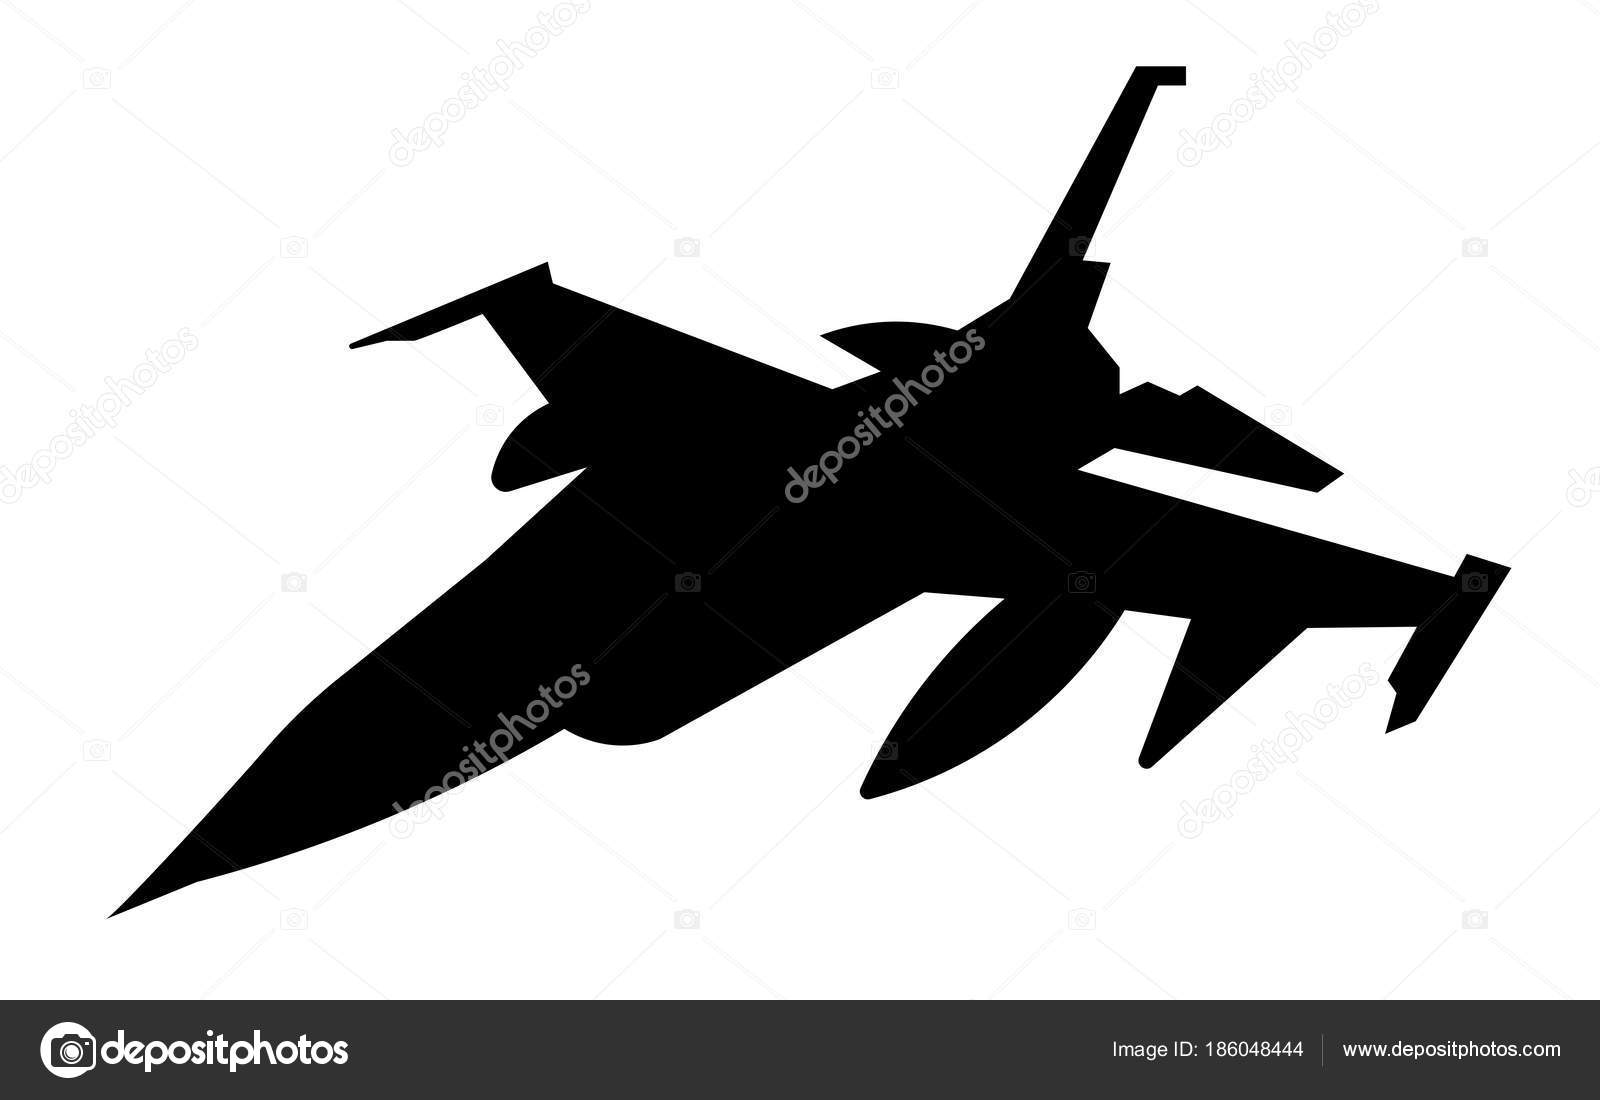 F16 Silhouette On White Background Stock Vector C Vector Best 186048444